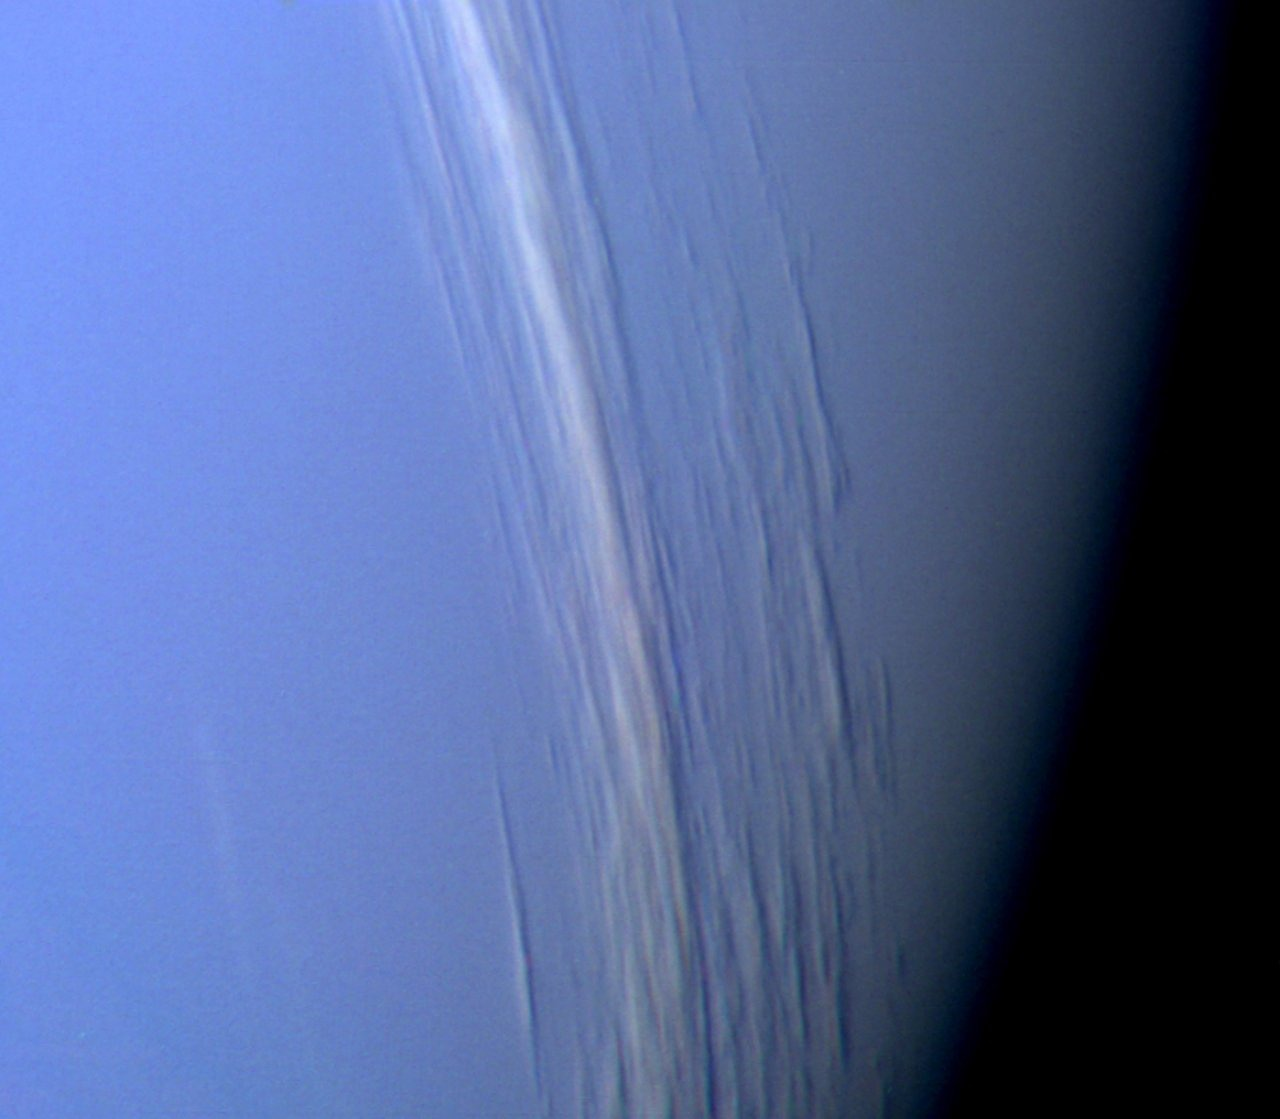 neptune planet surface free photo